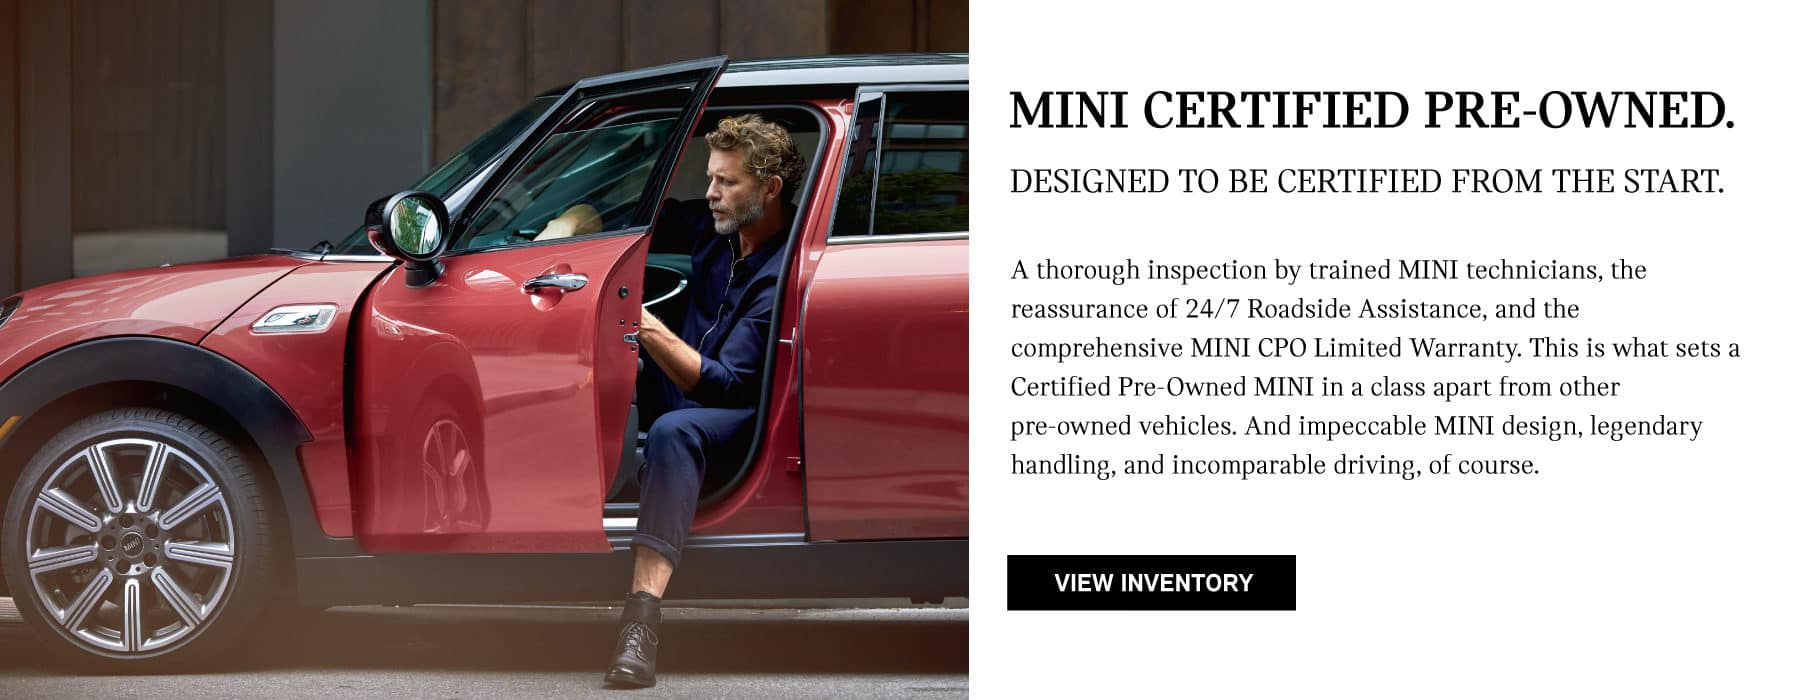 MINI CERTIFIED PRE-OWNEDA thorough inspection by trained MINI technicians, the reassurance of 24/7 Roadside Assistance, and the comprehensive MINI CPO Limited Warranty. This is what sets a Certified Pre-Owned MINI in a class apart from other pre-owned vehicles. And impeccable MINI design, legendary handling, and incomparable driving, of course. VIEW INVENTORY.